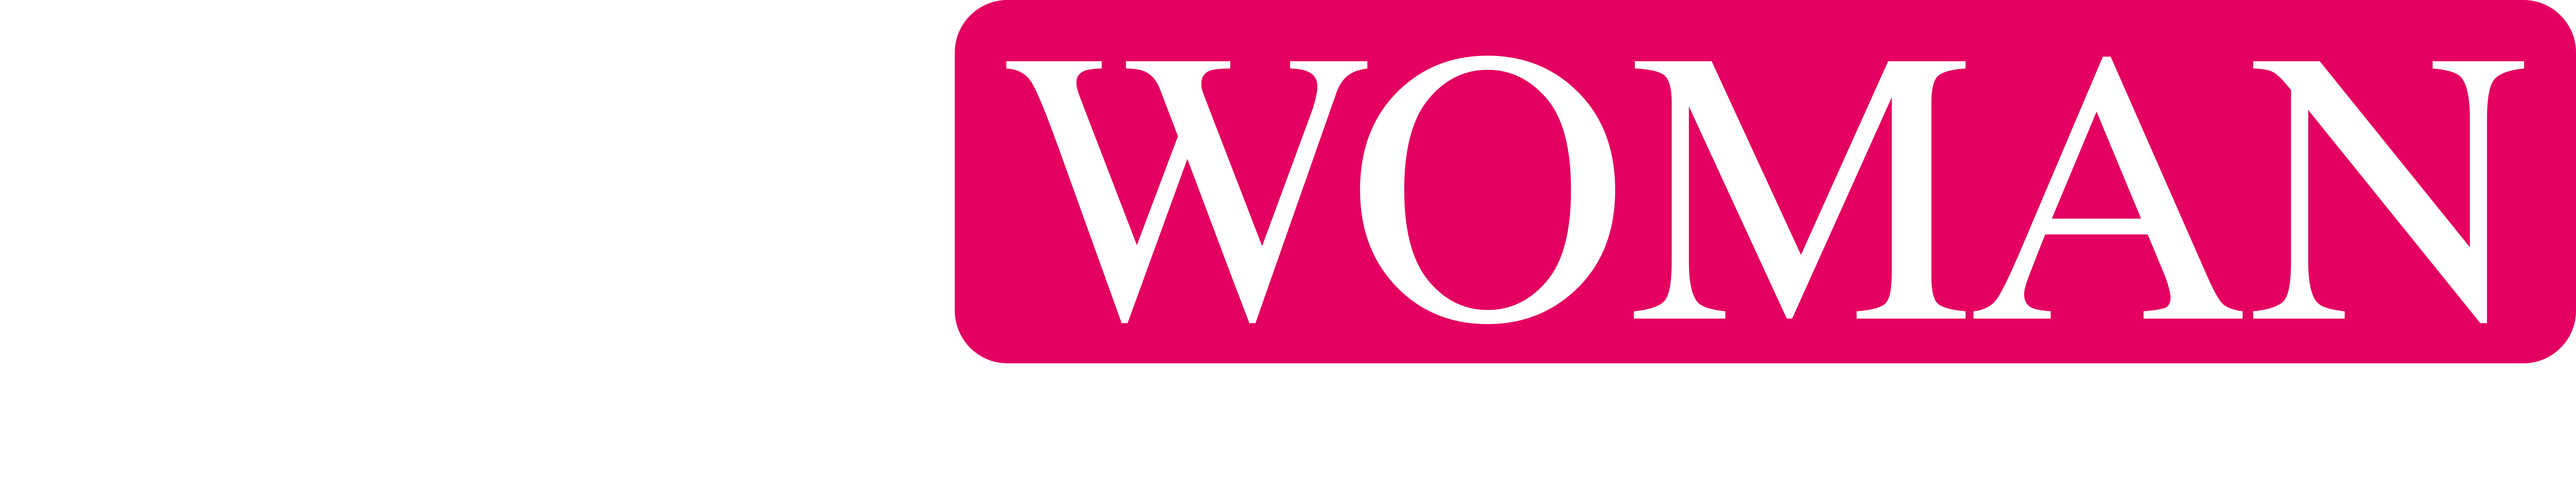 I AM WOMAN LOGO 2019 Rose Pink